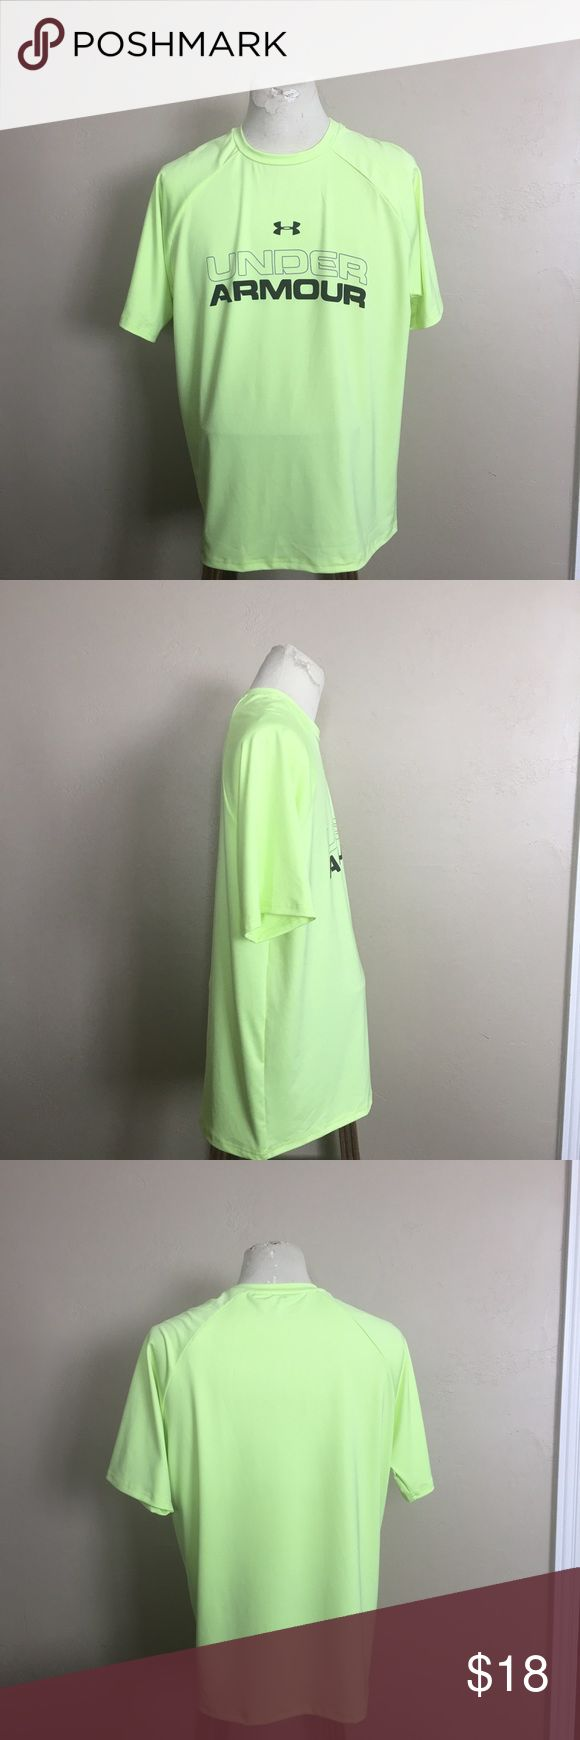 Under armour mint Green tops/ tee- shirt Large Brand new just no tags. This is never worn. We can assure you that this is brand new. We promise to ship as soon as we can. We offer 10% off discount for bundle shipping. We store our products in a smoke free home. Under Armour Shirts Tees - Short Sleeve